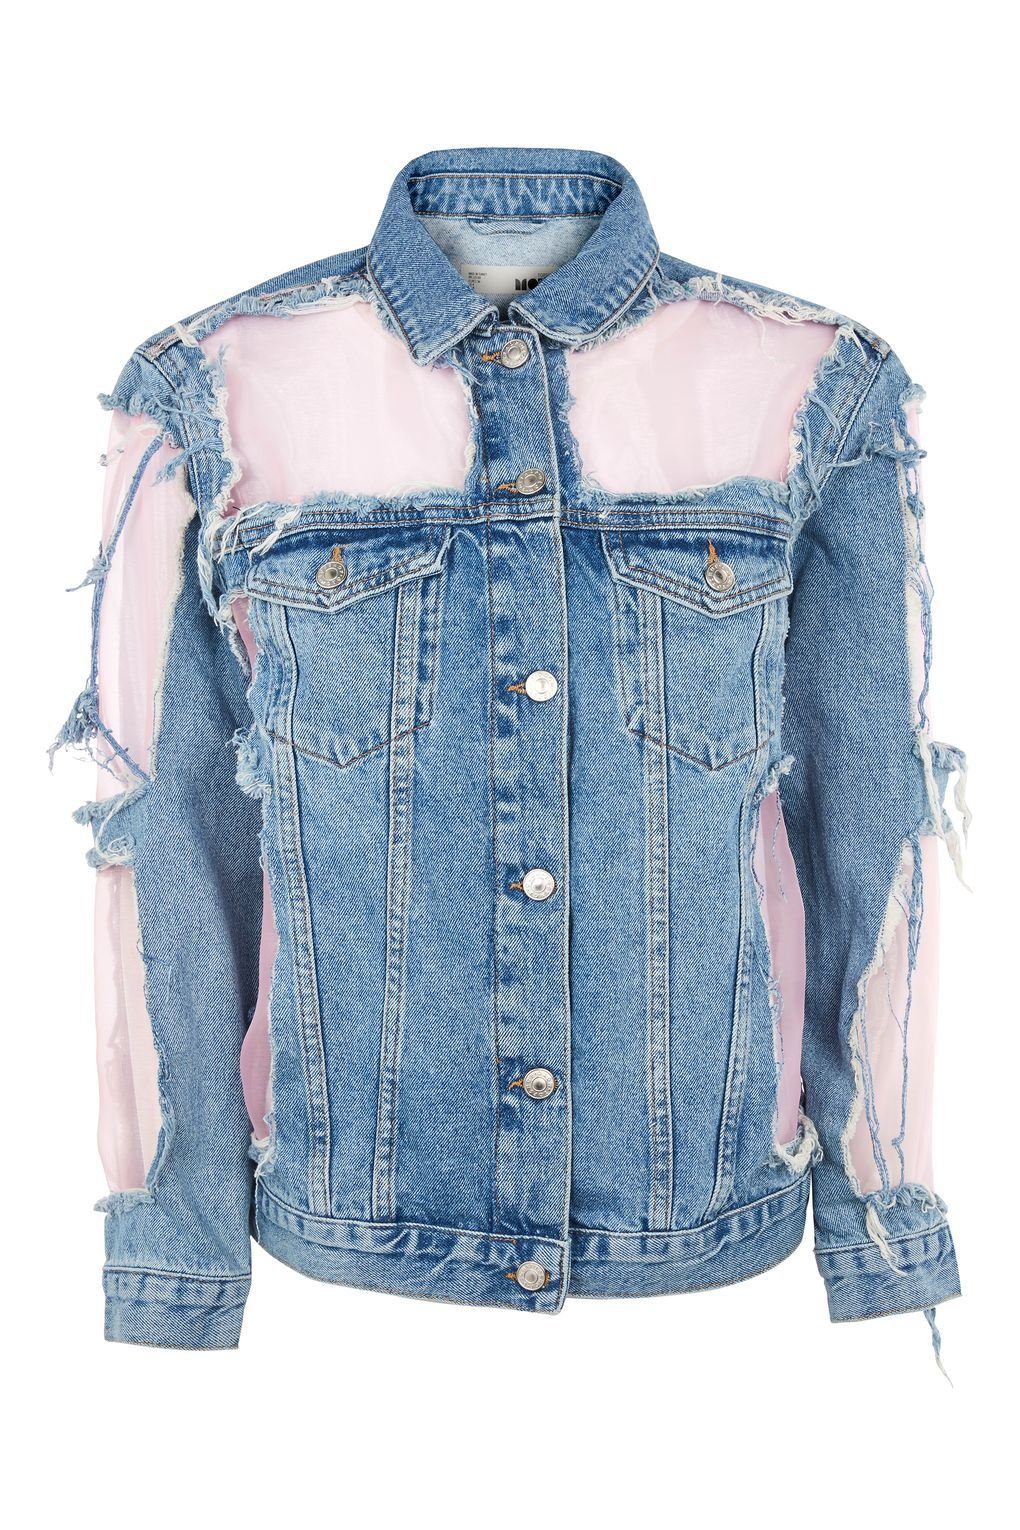 MOTO Pink Organza Jacket Pink denim jacket, Denim coat